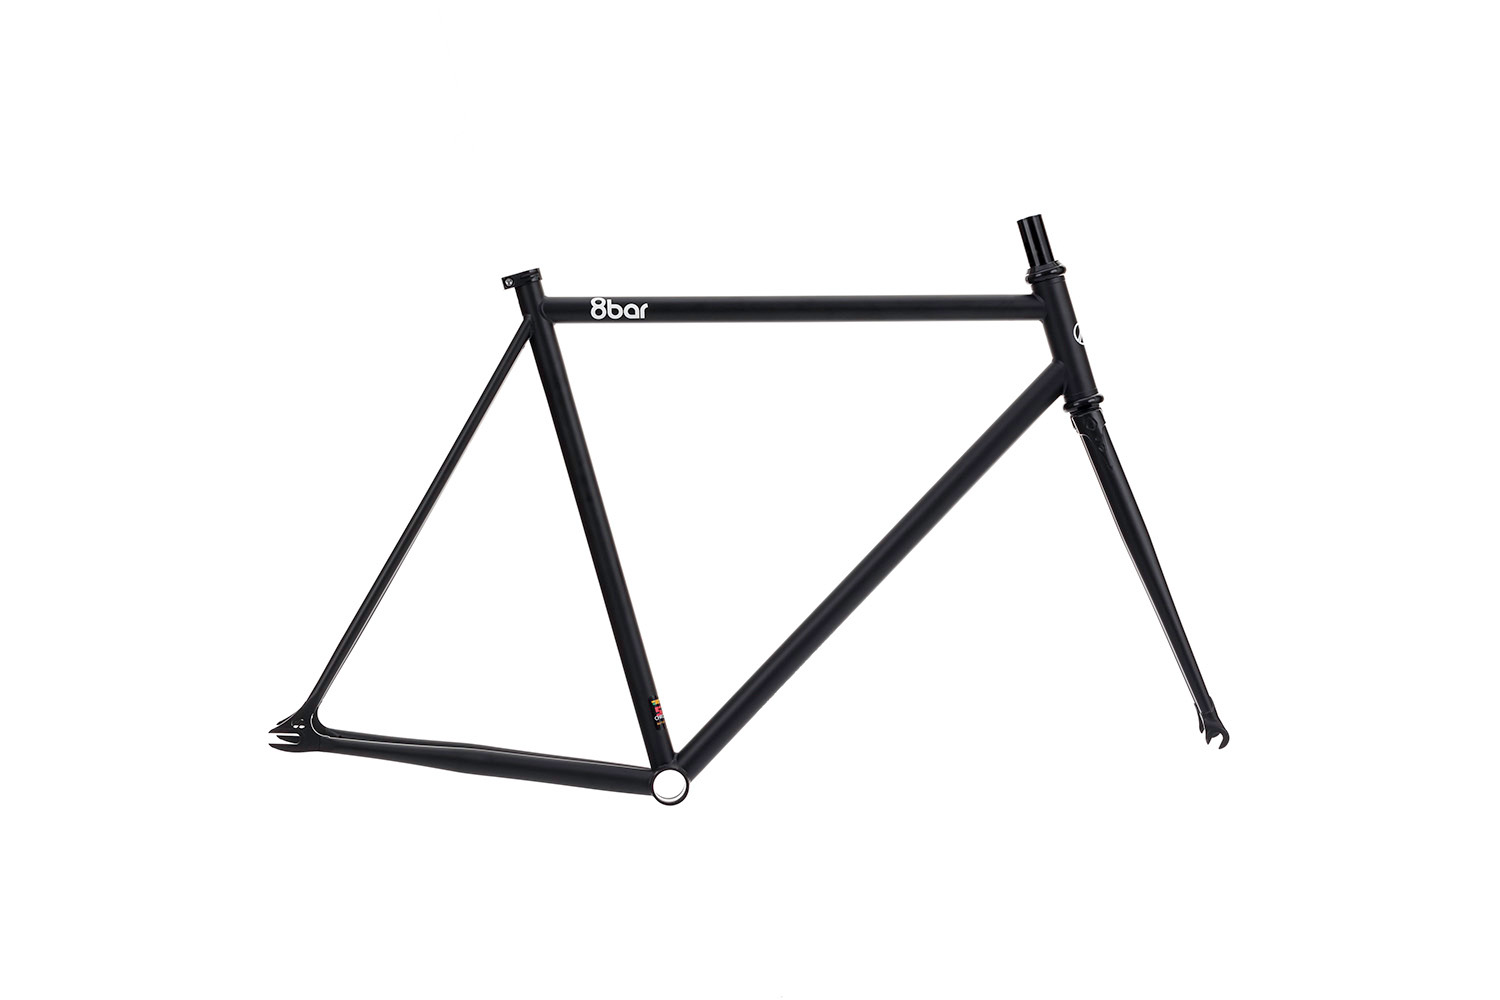 8bar bikes neukln black fixie fixed gear berlin 0002 - FHAIN STEEL v1 Rahmenset